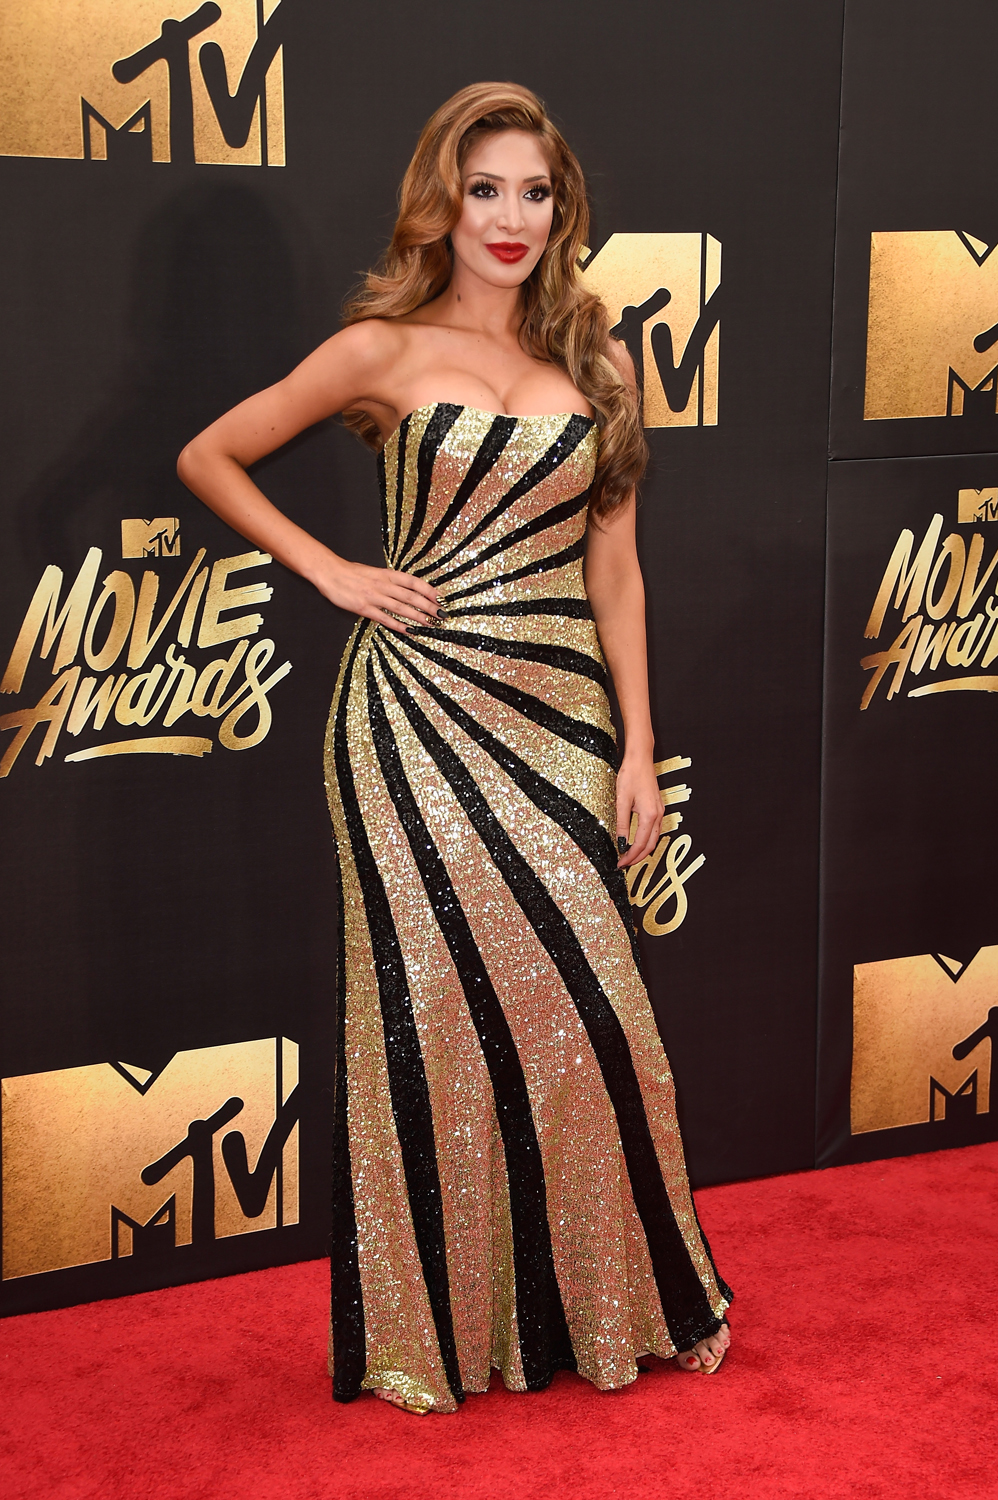 BURBANK, CALIFORNIA - APRIL 09: TV personality Farrah Abraham attends the 2016 MTV Movie Awards at Warner Bros. Studios on April 9, 2016 in Burbank, California. MTV Movie Awards airs April 10, 2016 at 8pm ET/PT. Frazer Harrison/Getty Images/AFP